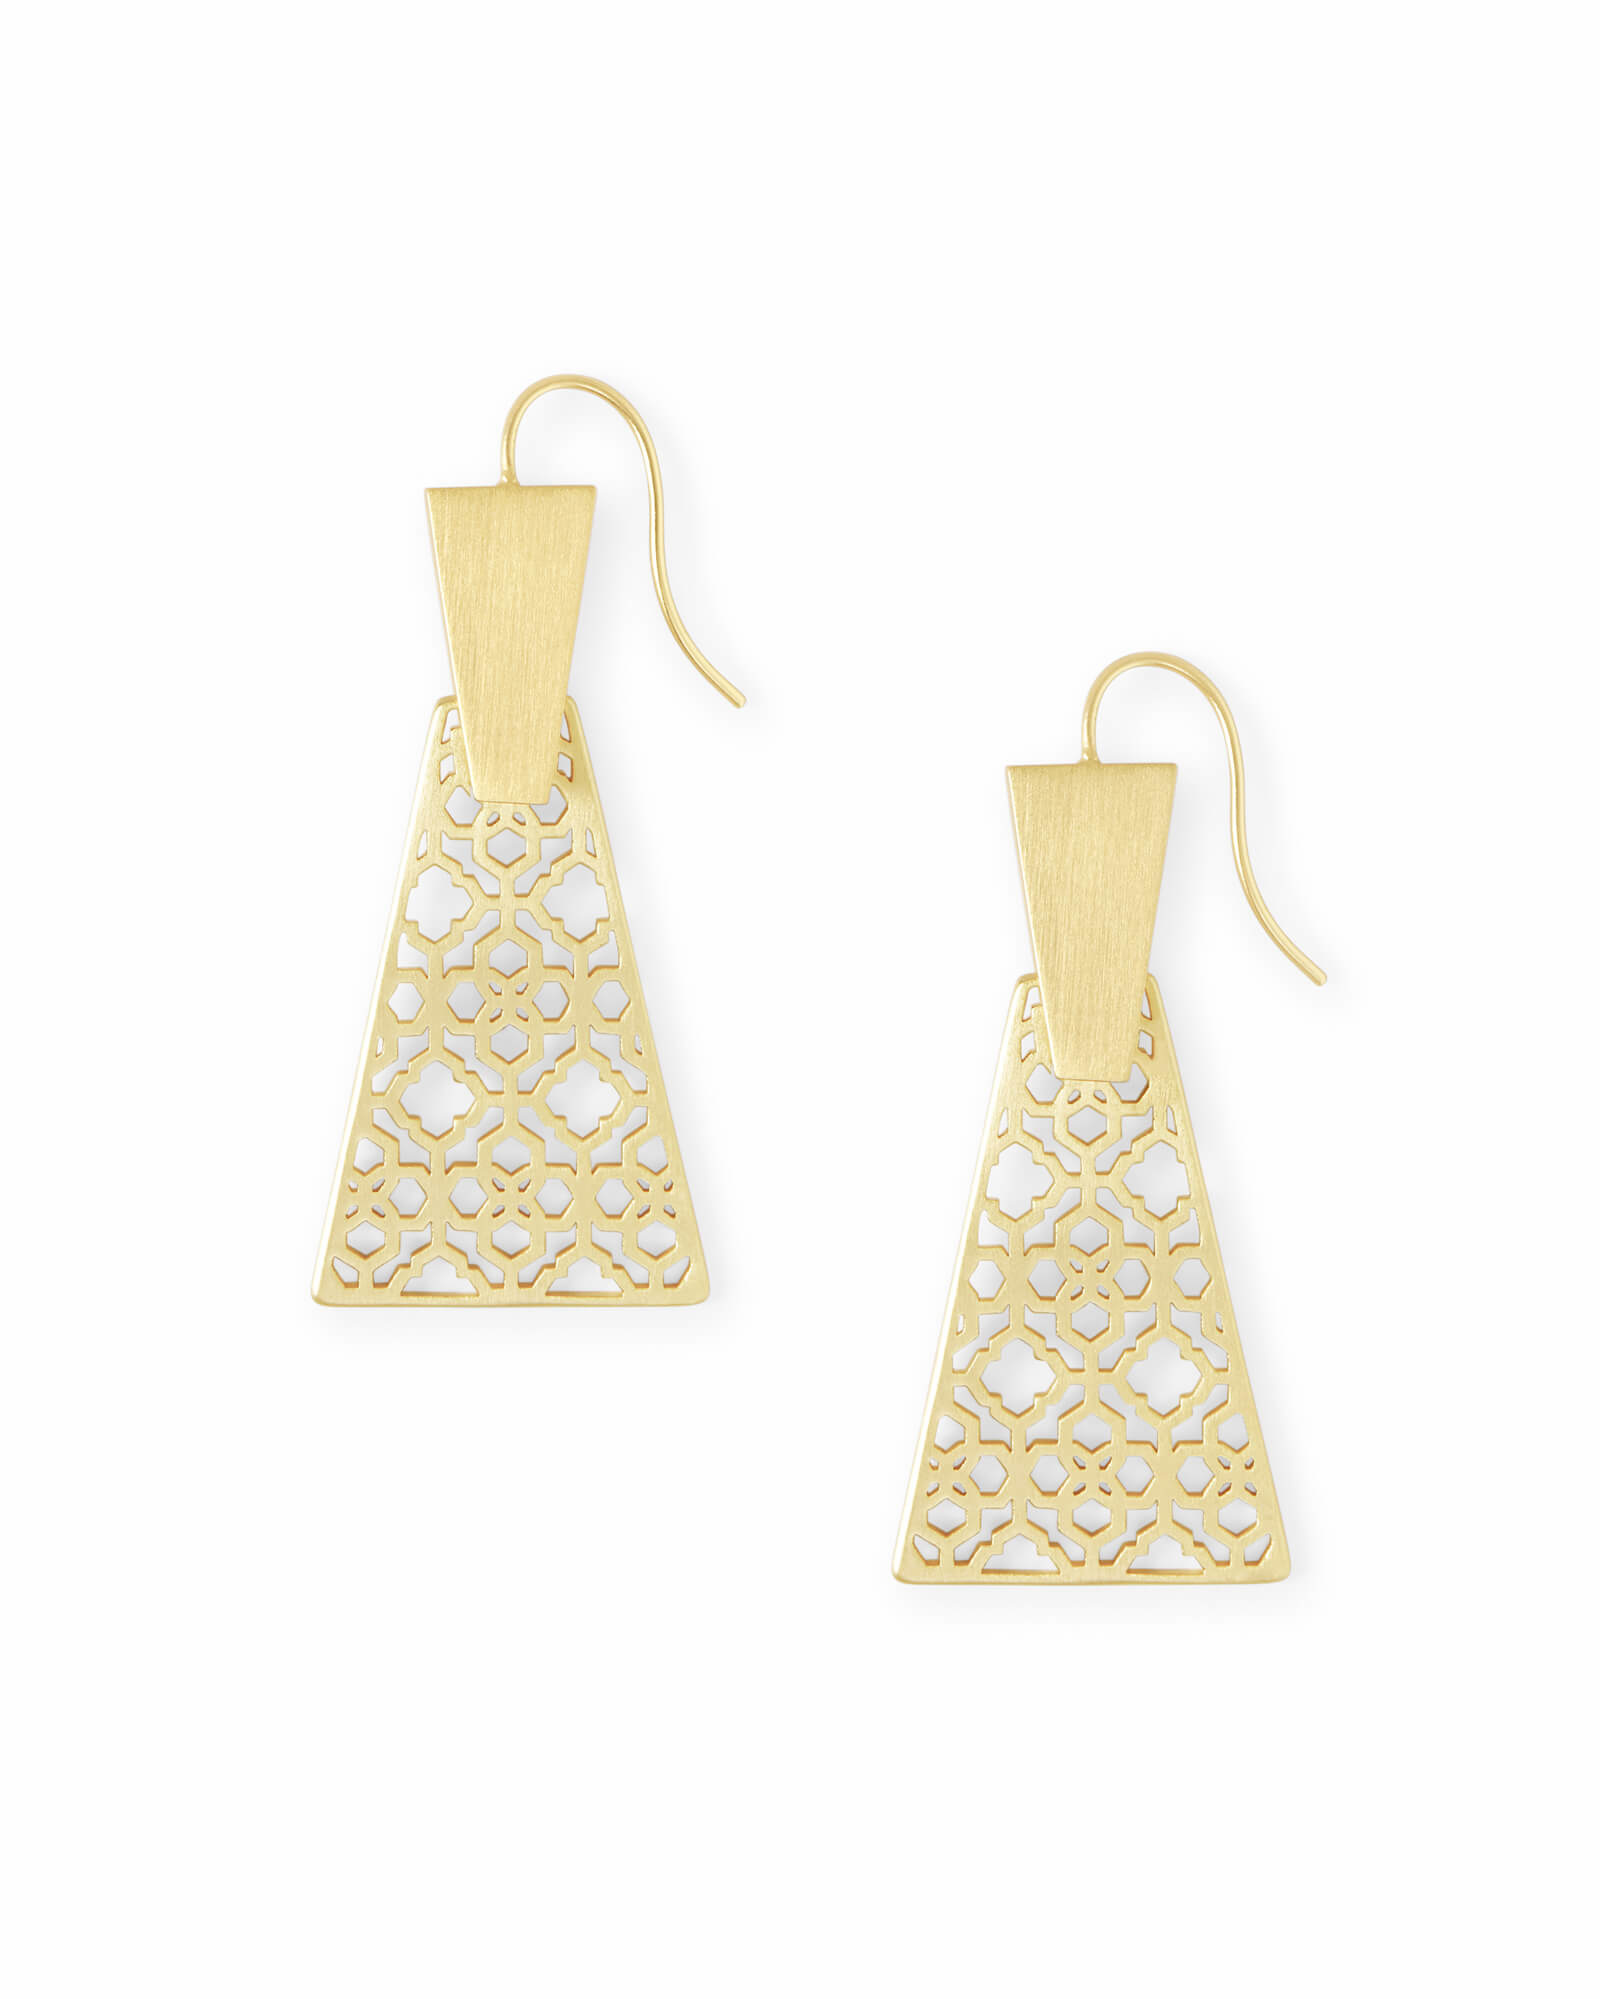 Keerti Filigree Small Drop Earrings